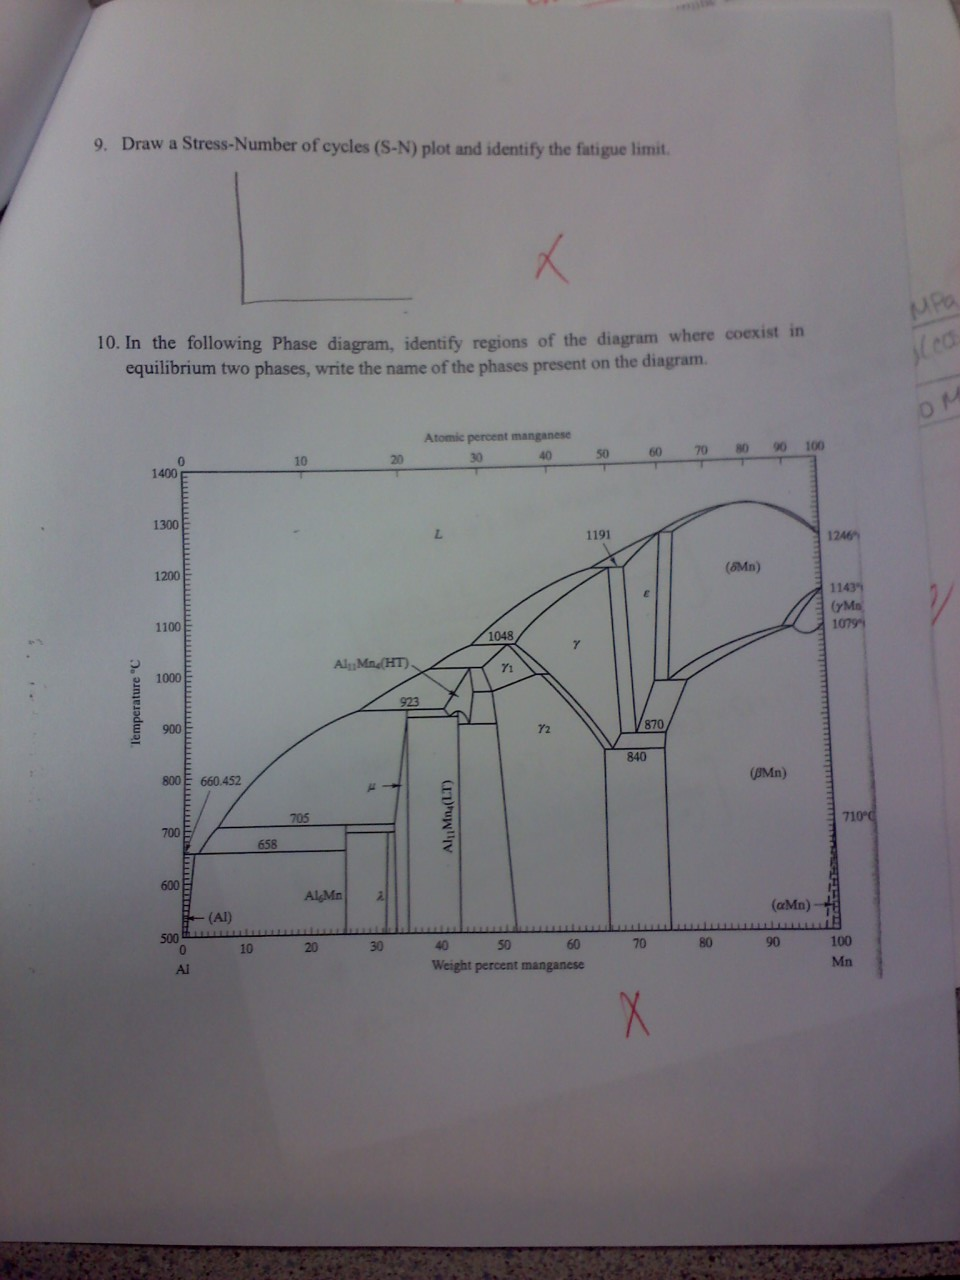 In the Phase diagram of figure 1. Due the followin